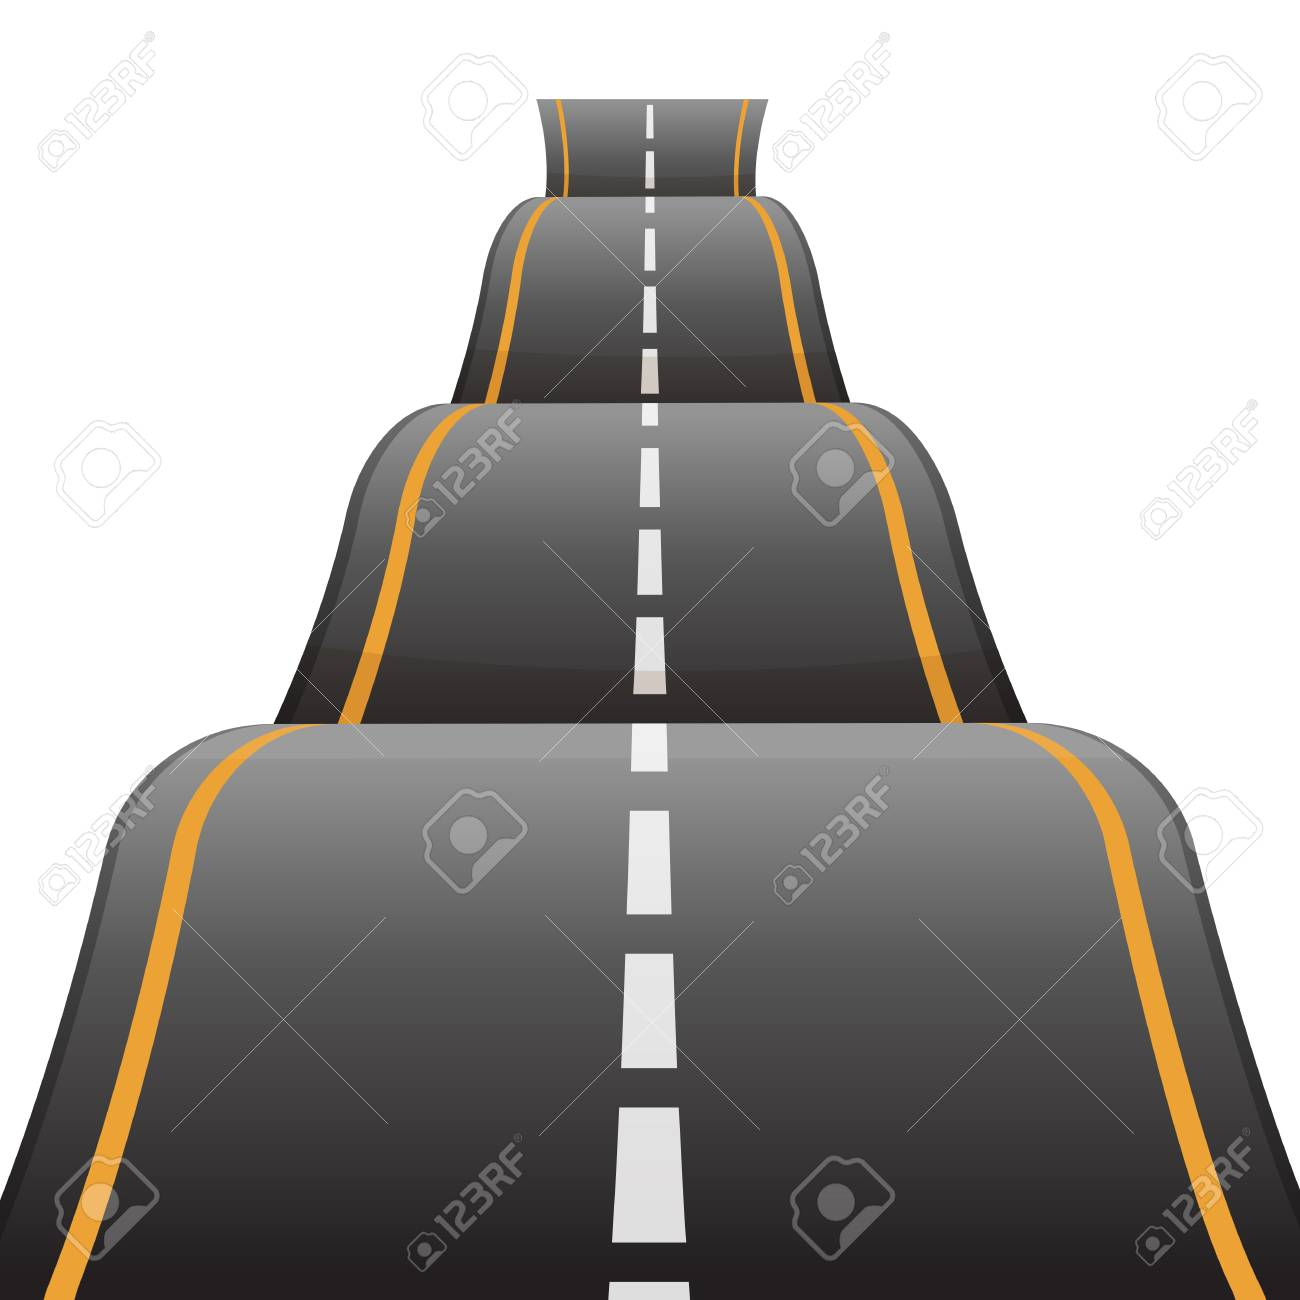 Highway clipart rough road. Free download clip art